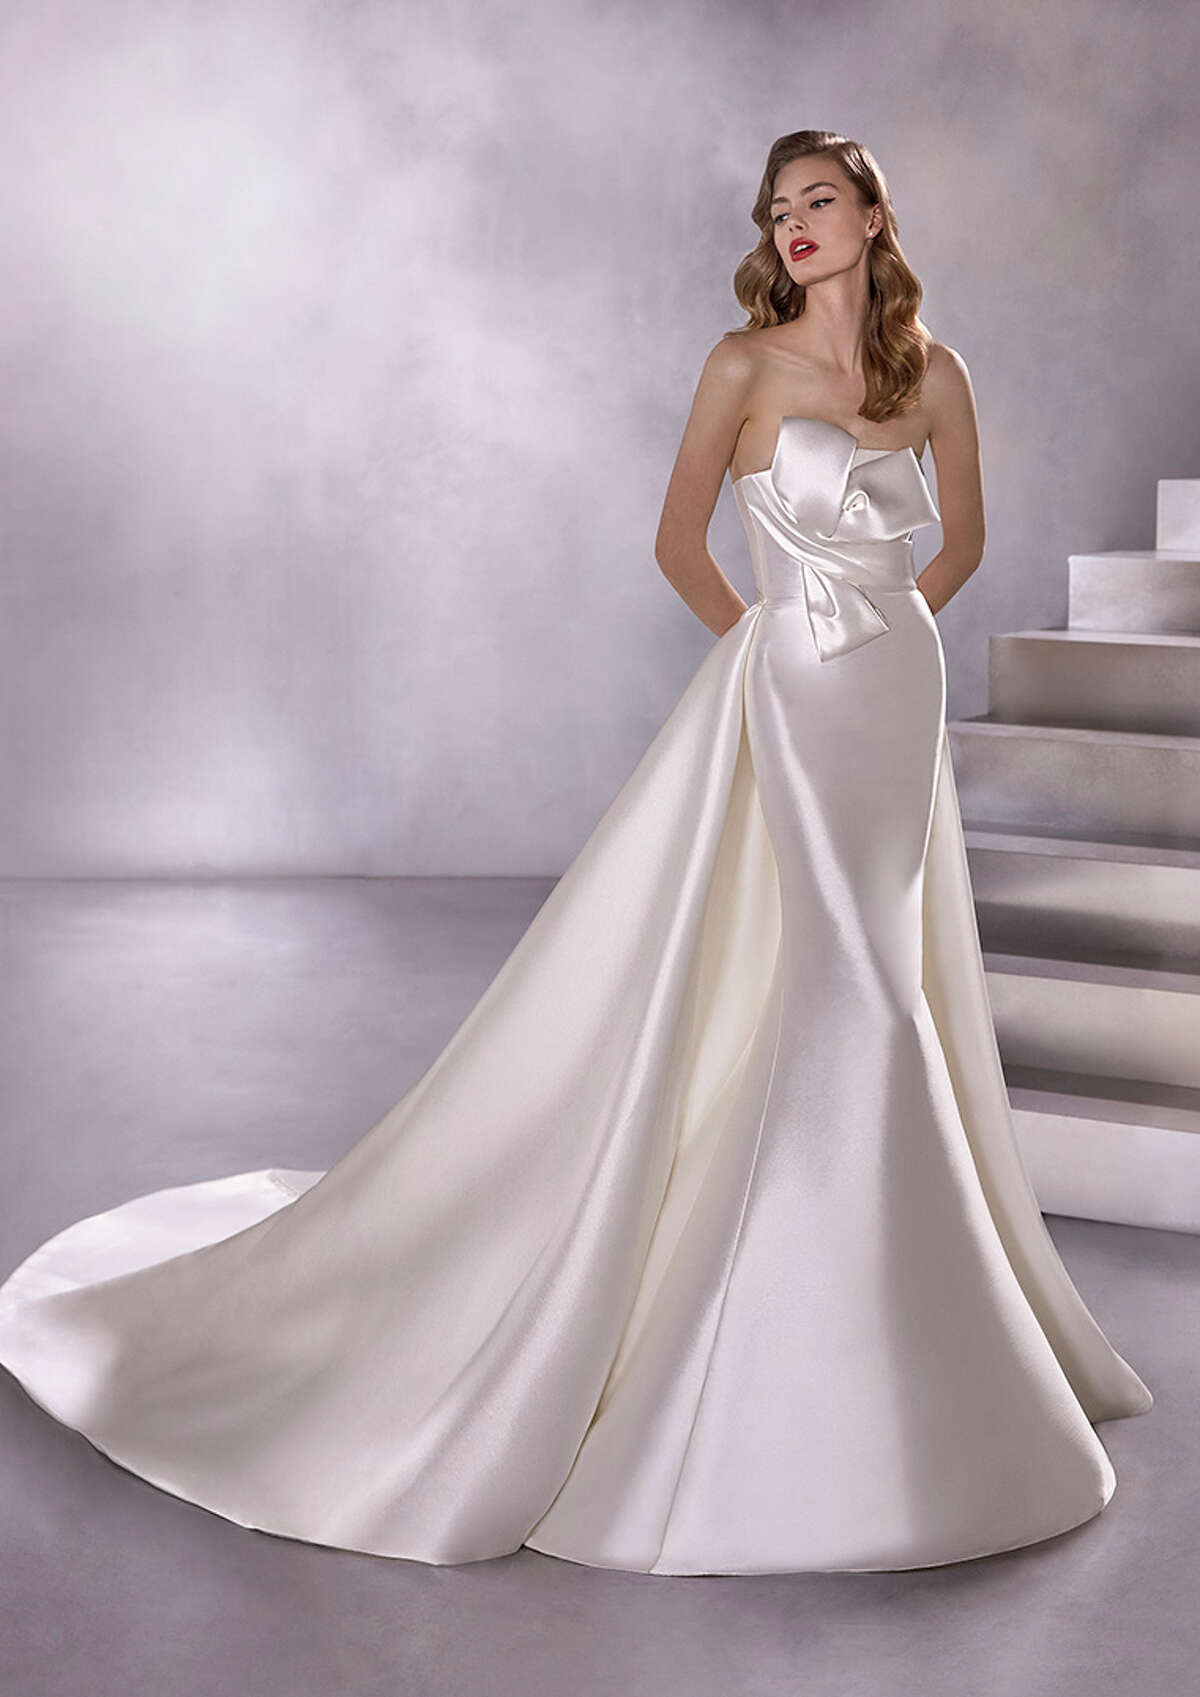 Black Star B Pronovias Boutique Houston is one of seven new bridal stores that the brand is opening across the country, joining the first-ever American store in New York.